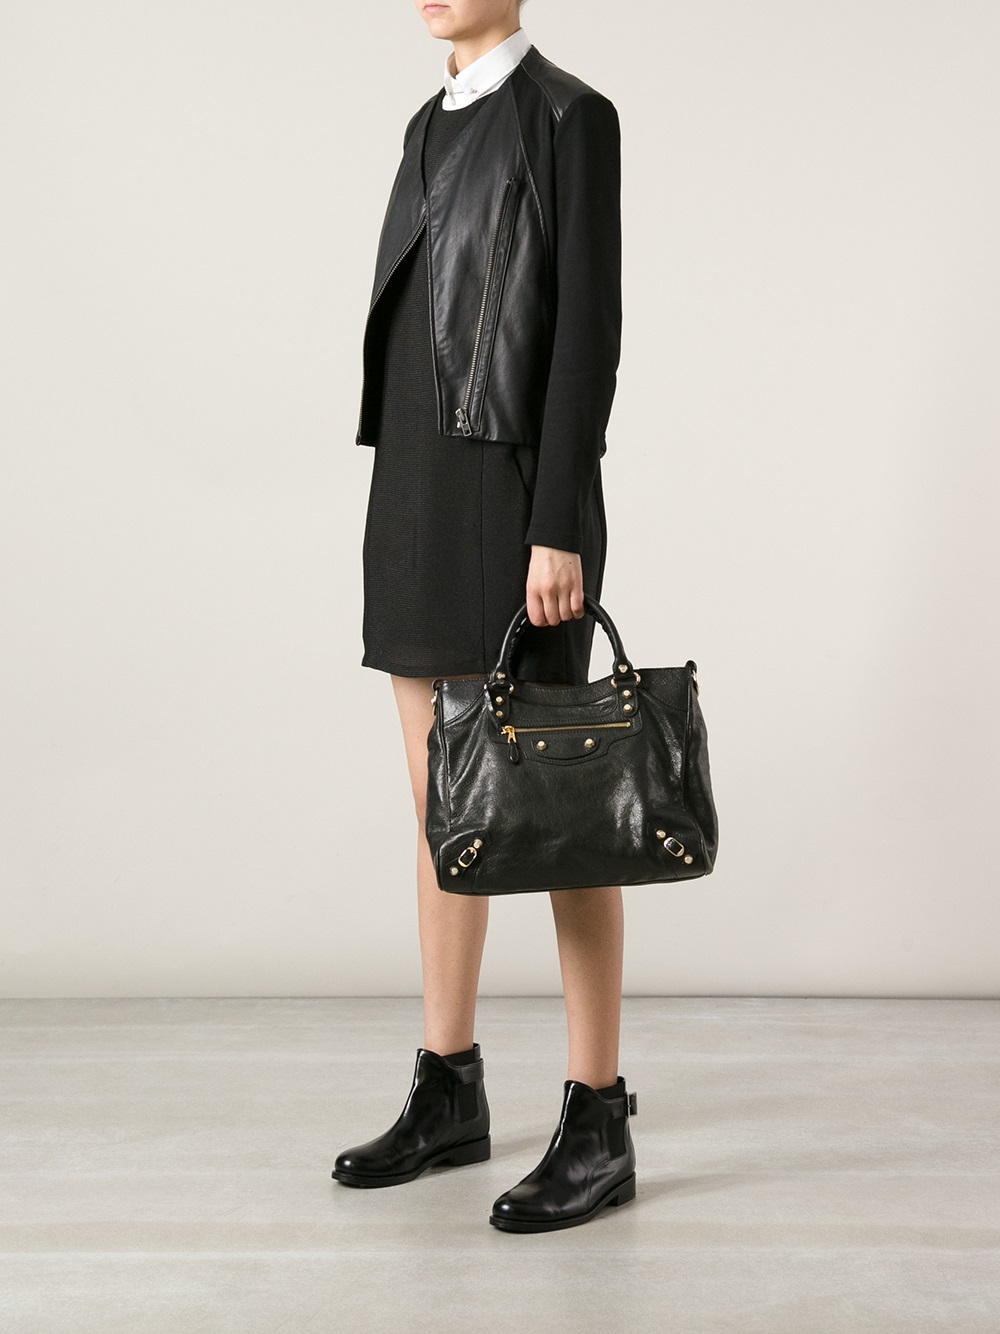 595a6b7be6 Balenciaga Giant Velo Arena Tote in Black - Lyst